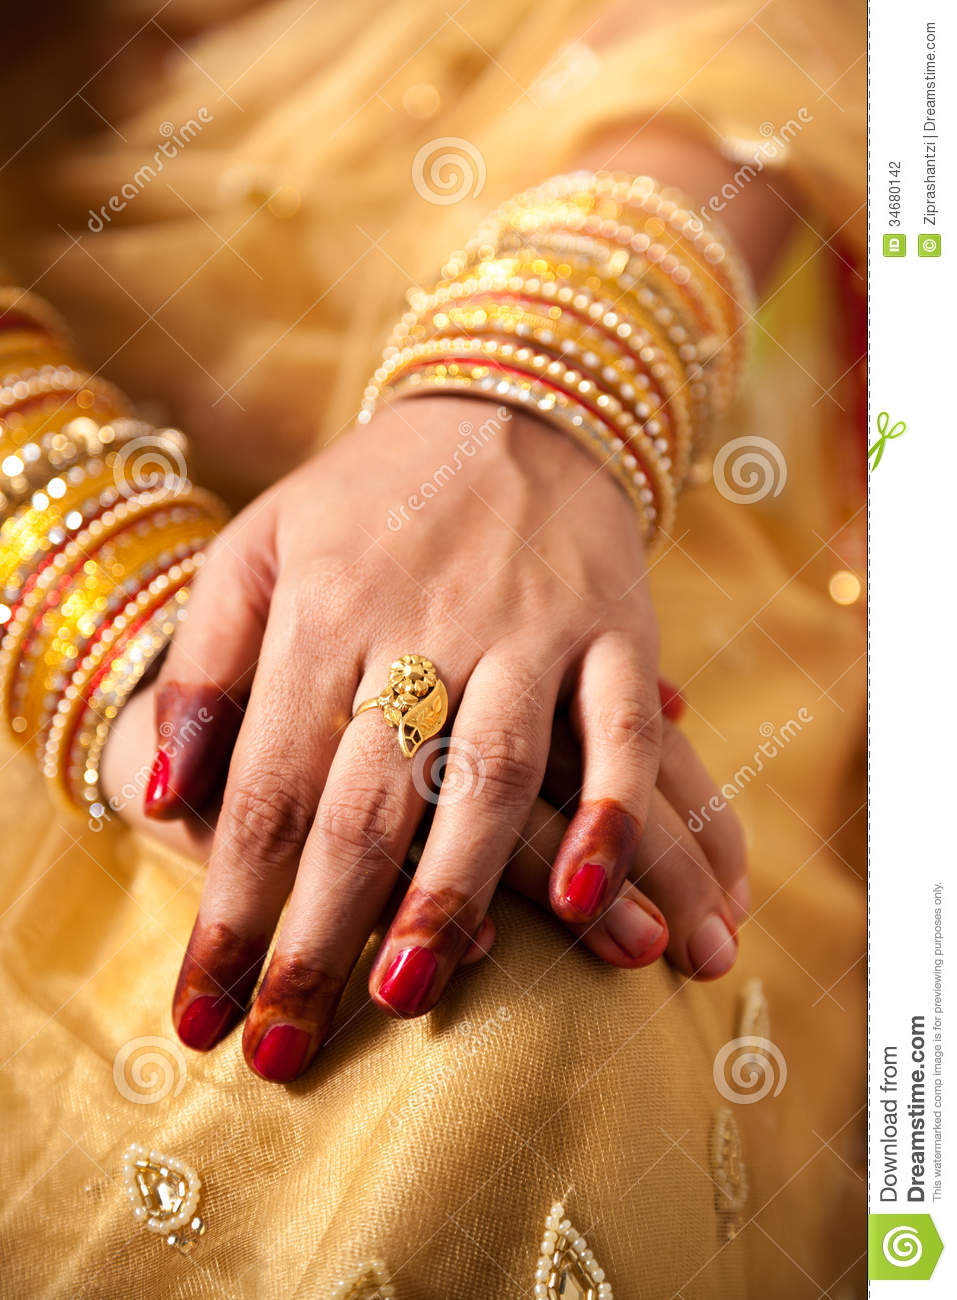 Decorative hand of bride stock photo. Image of indian - 34680142